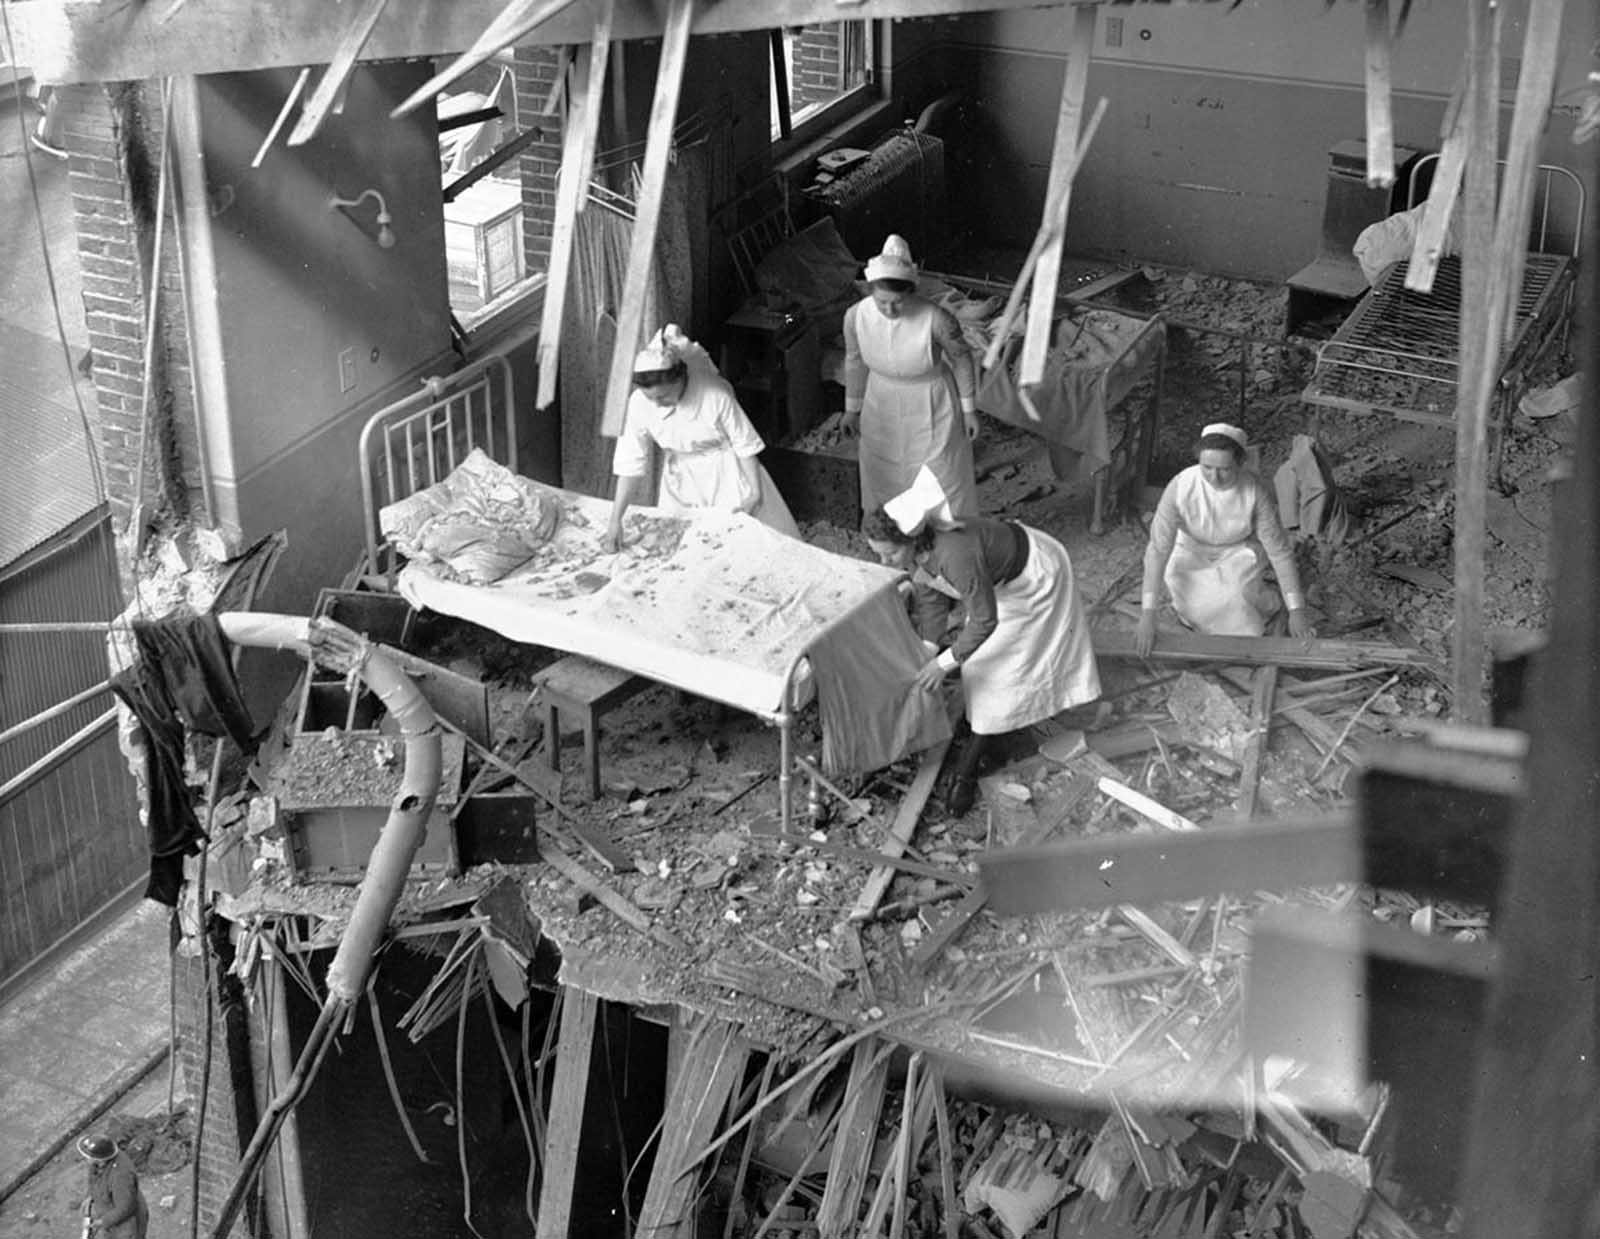 Nurses are seen clearing debris from one of the wards in St. Peter's Hospital, Stepney, East London, on April 19, 1941. Four hospitals were among the buildings hit by German bombs during a full scale attack on the British capital.